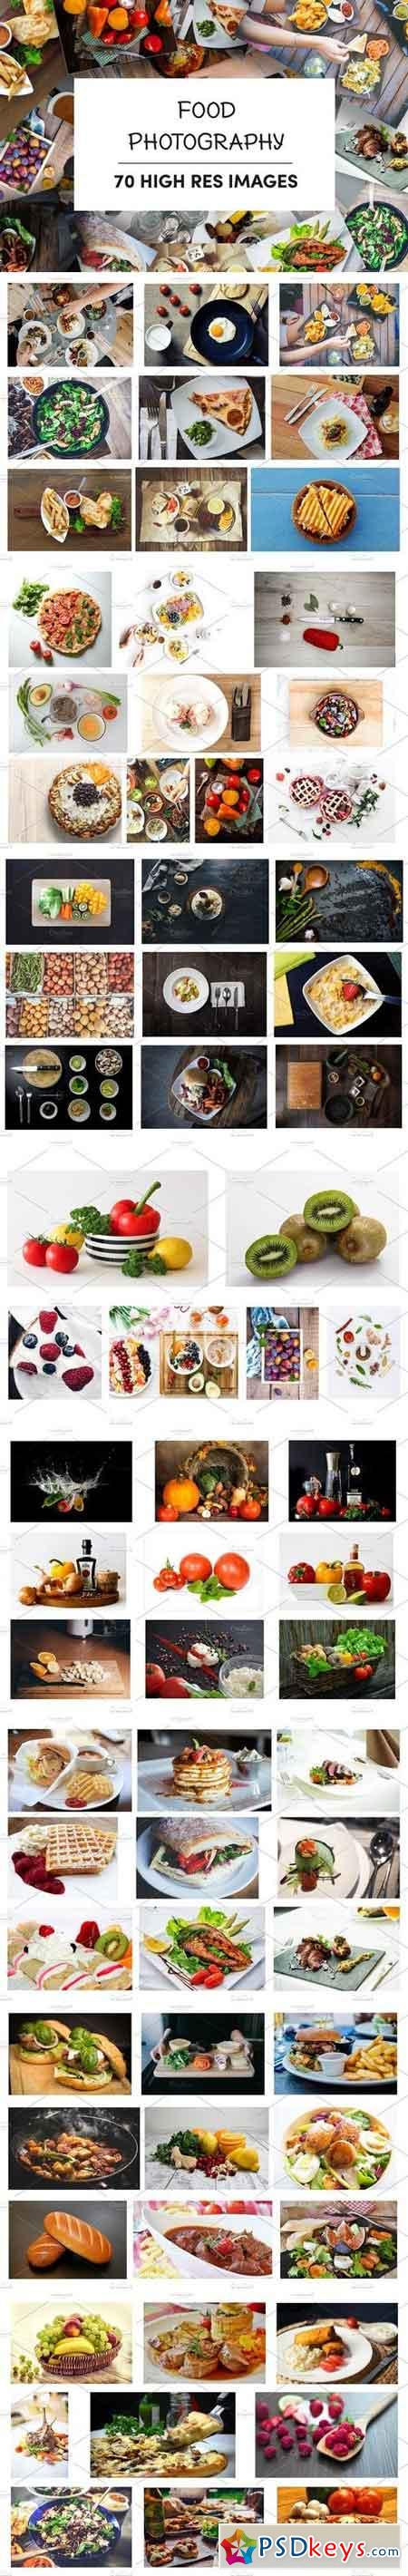 70 High Res Food Photography Images 1511456